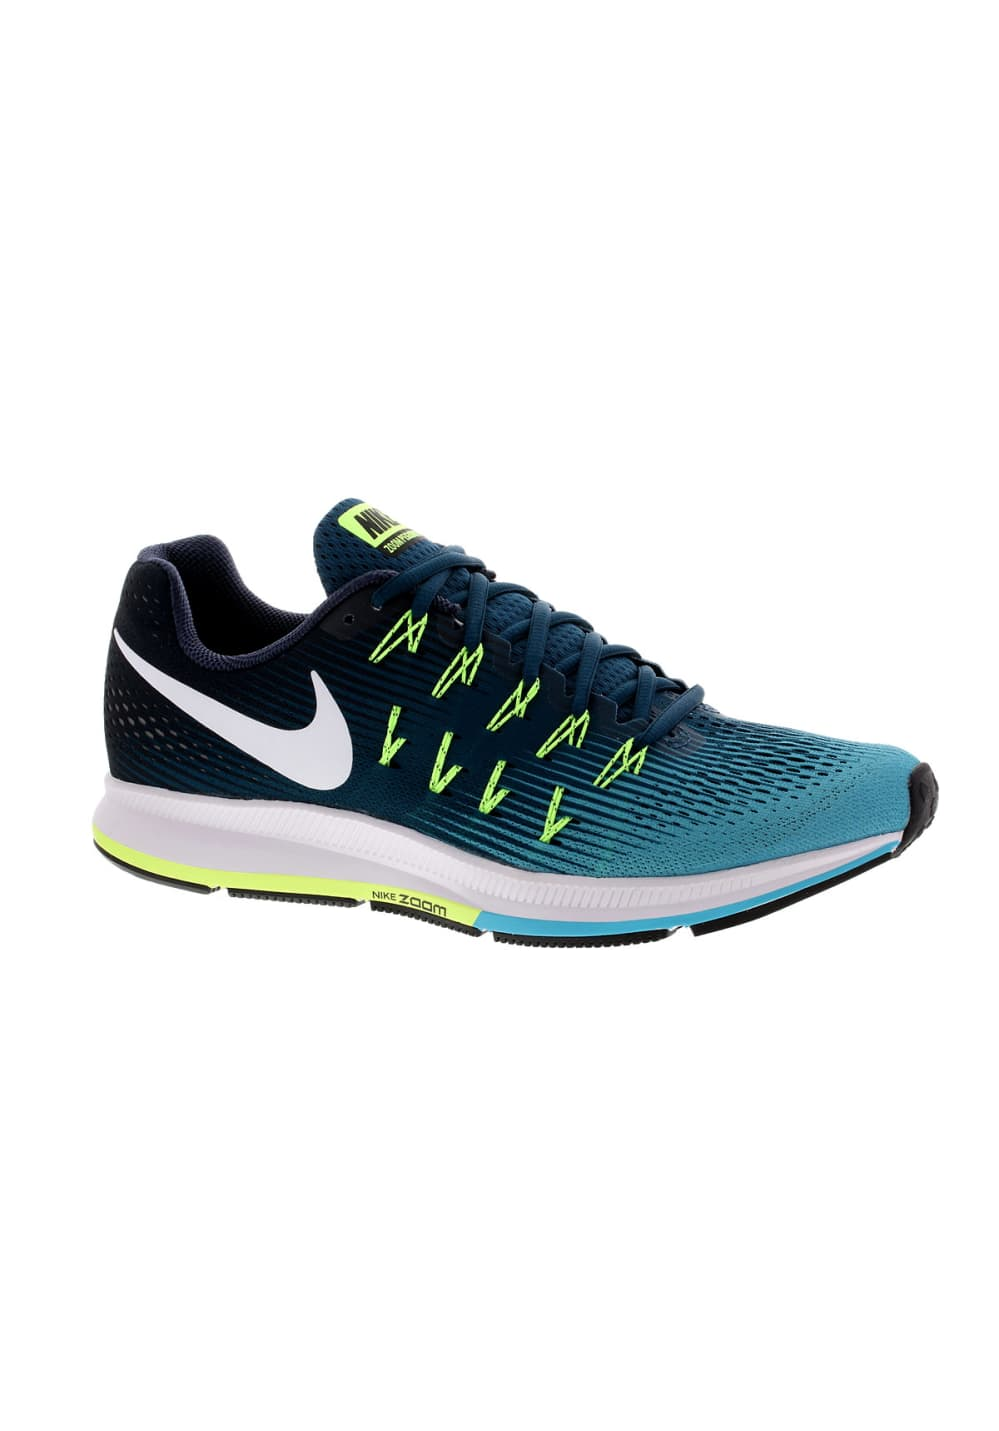 best cheap 5bbd7 30972 Nike Air Zoom Pegasus 33 - Running shoes for Men - Blue